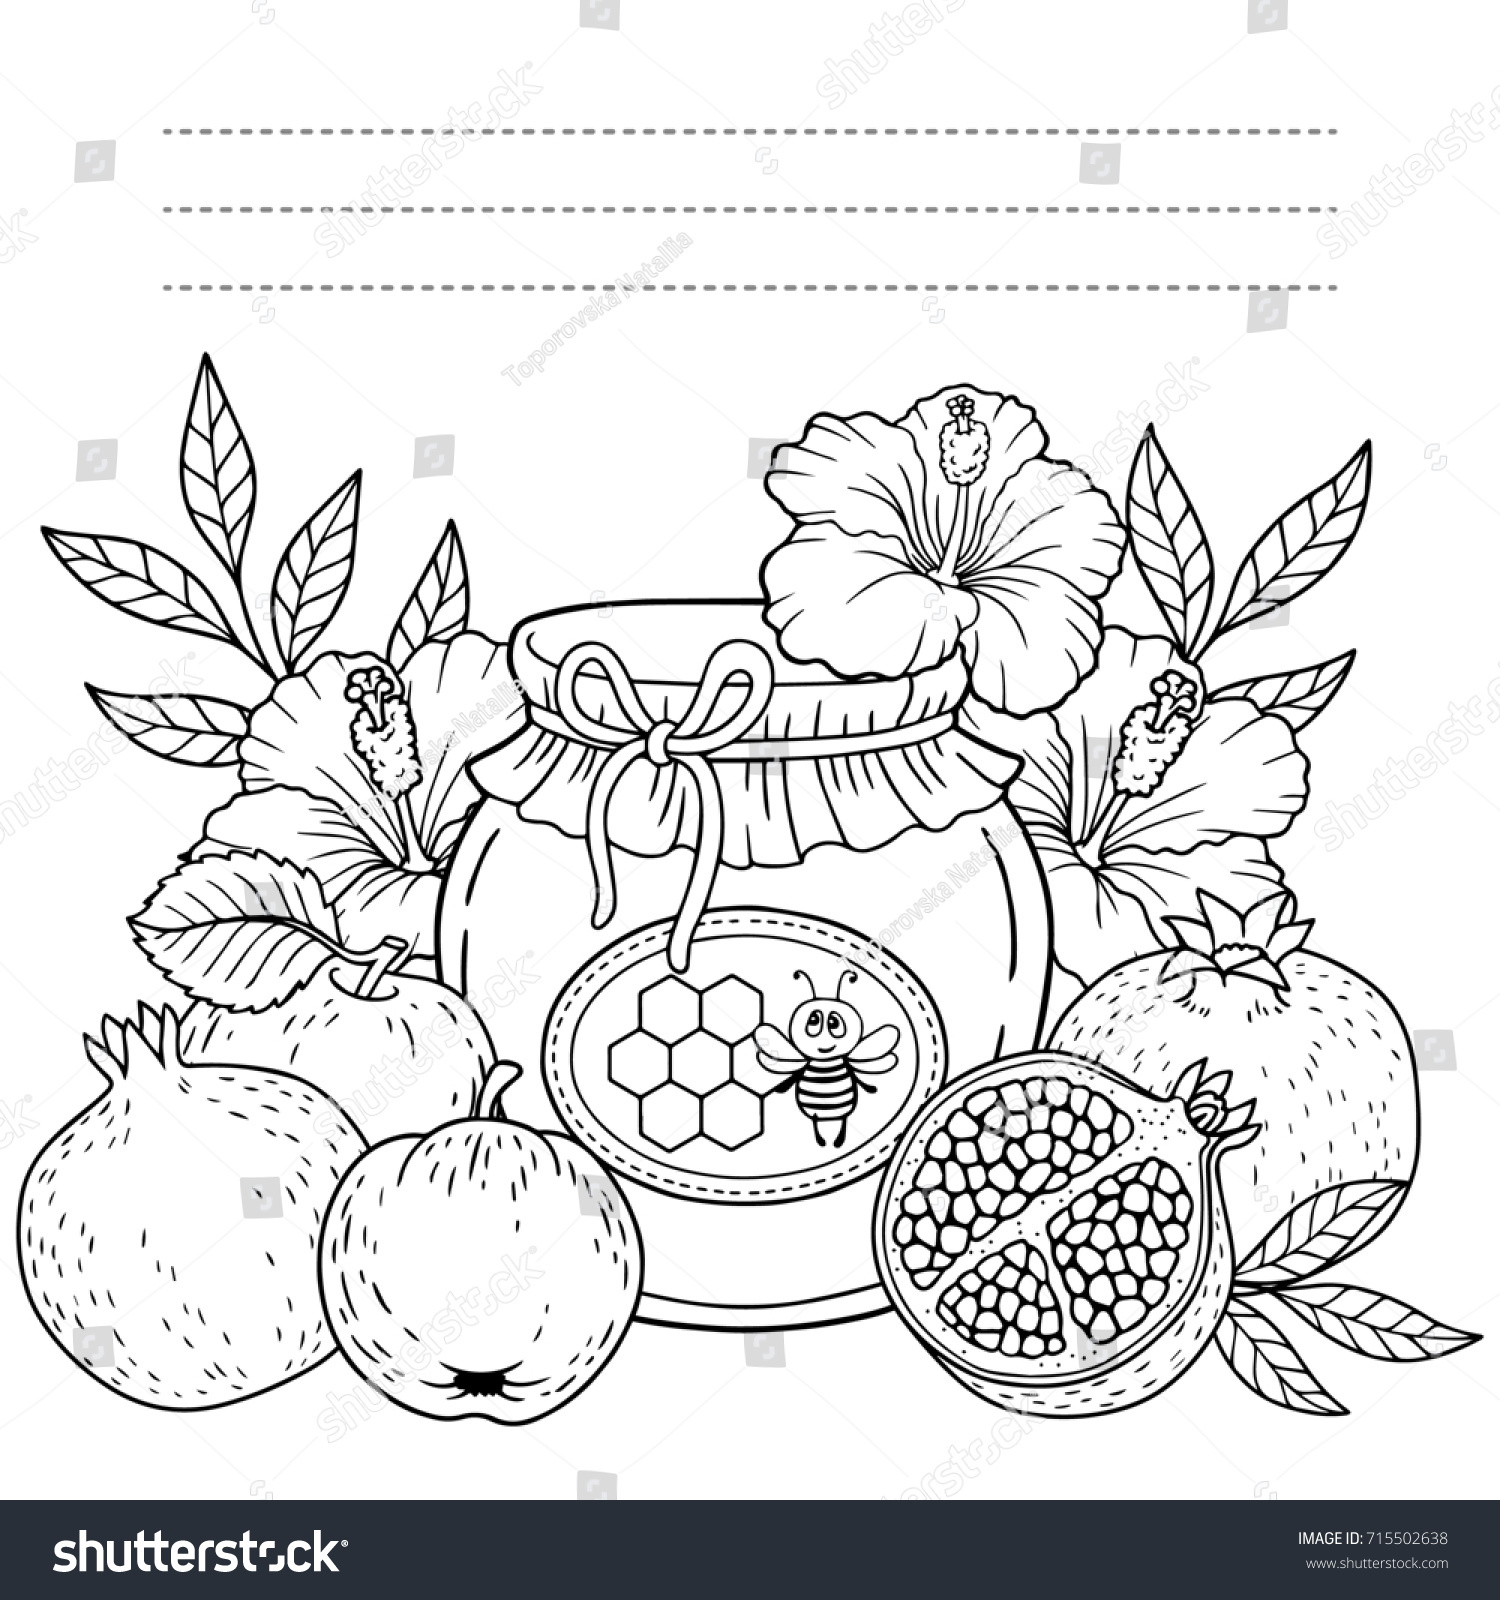 Autumn Coloring Page Adults Black White Stock Illustration 715502638 ...